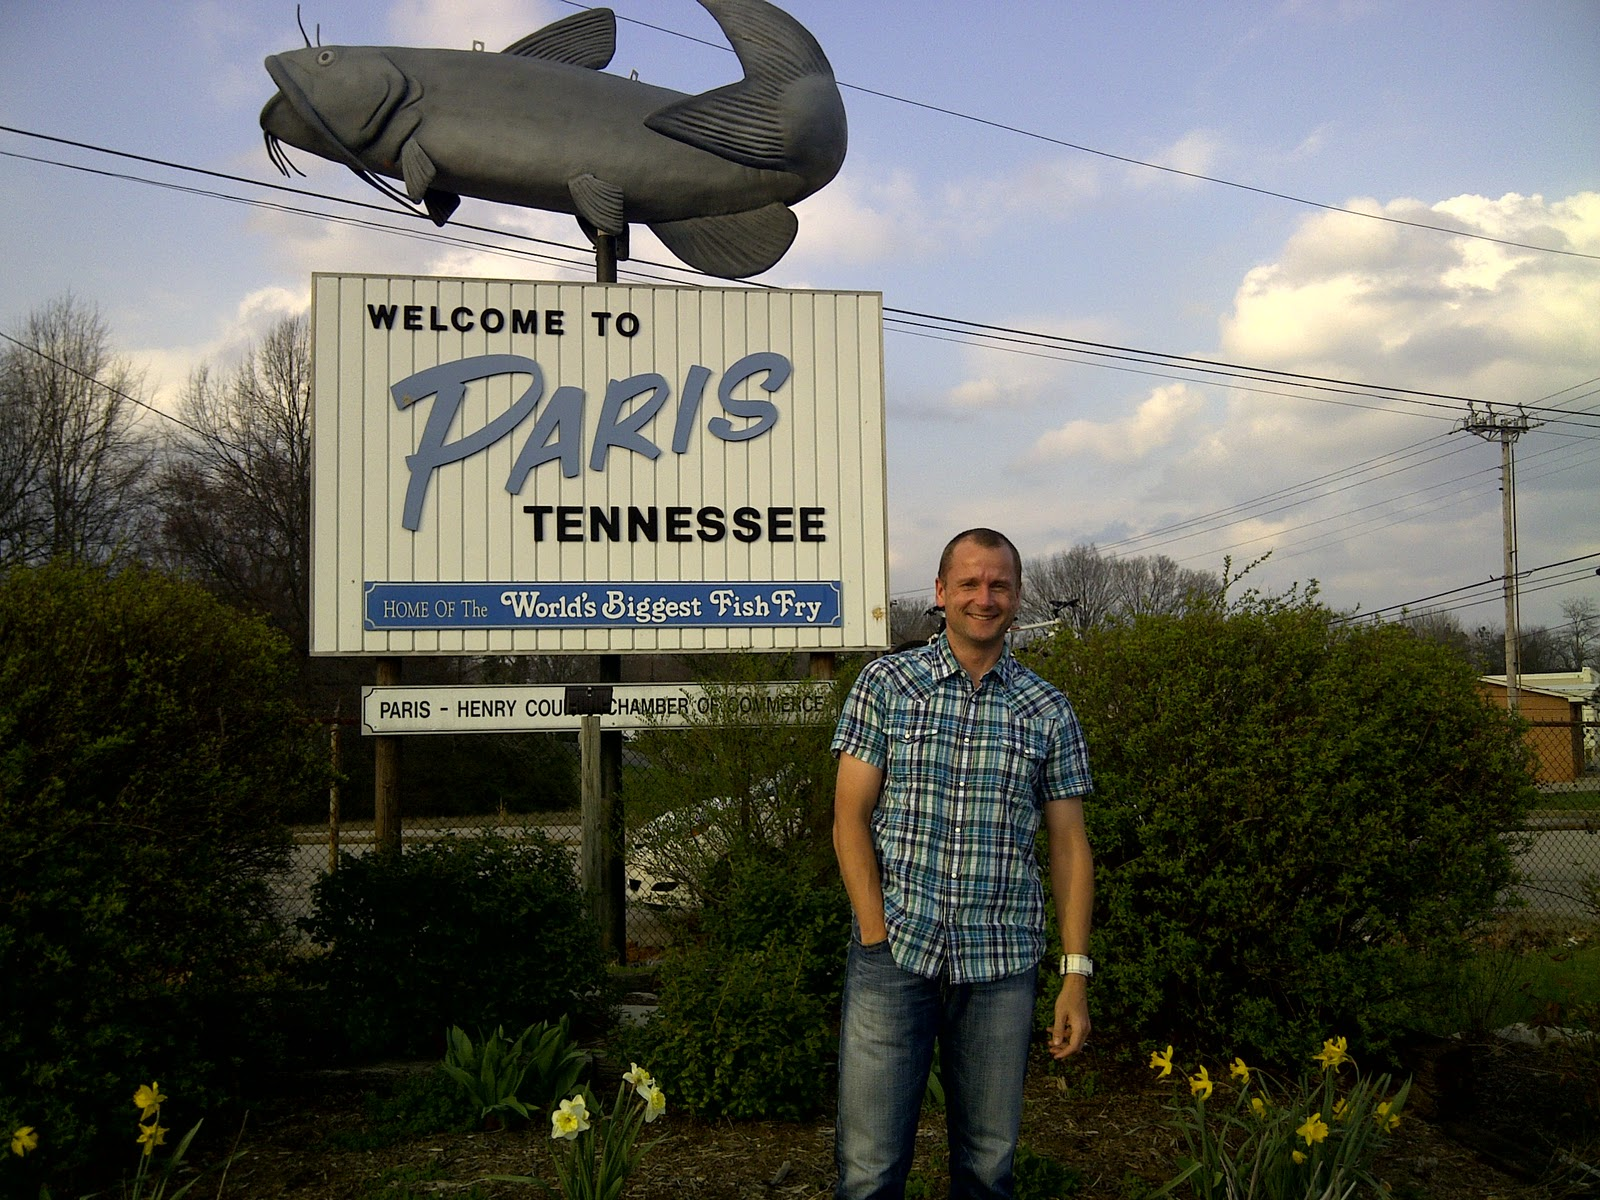 Race report 2011 natchez trace adventure race ultra kraut running paris tennessee home the worlds biggest fish fry not paris france home of the eiffel tower see image below of a german tourist proudly posing in front publicscrutiny Images